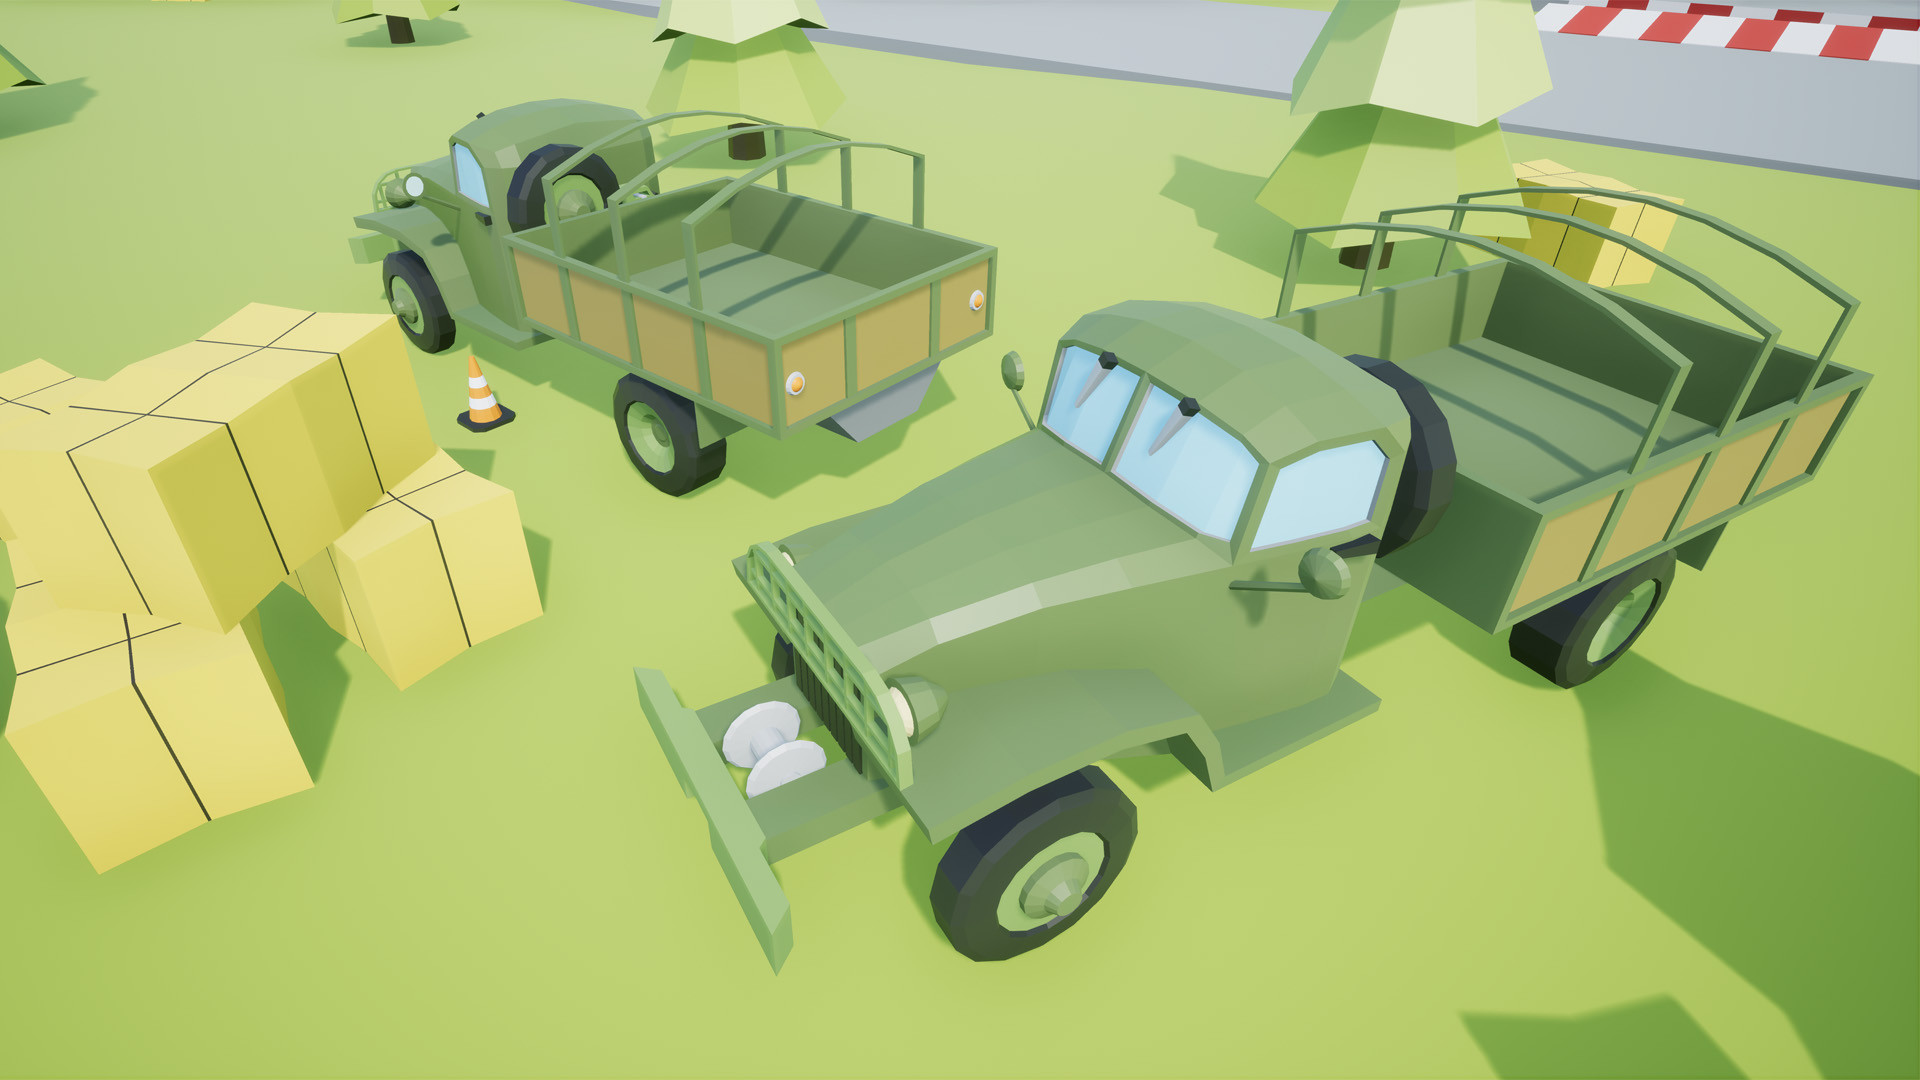 ArtStation - Low poly vehicles military pack 2, Núria Blanch